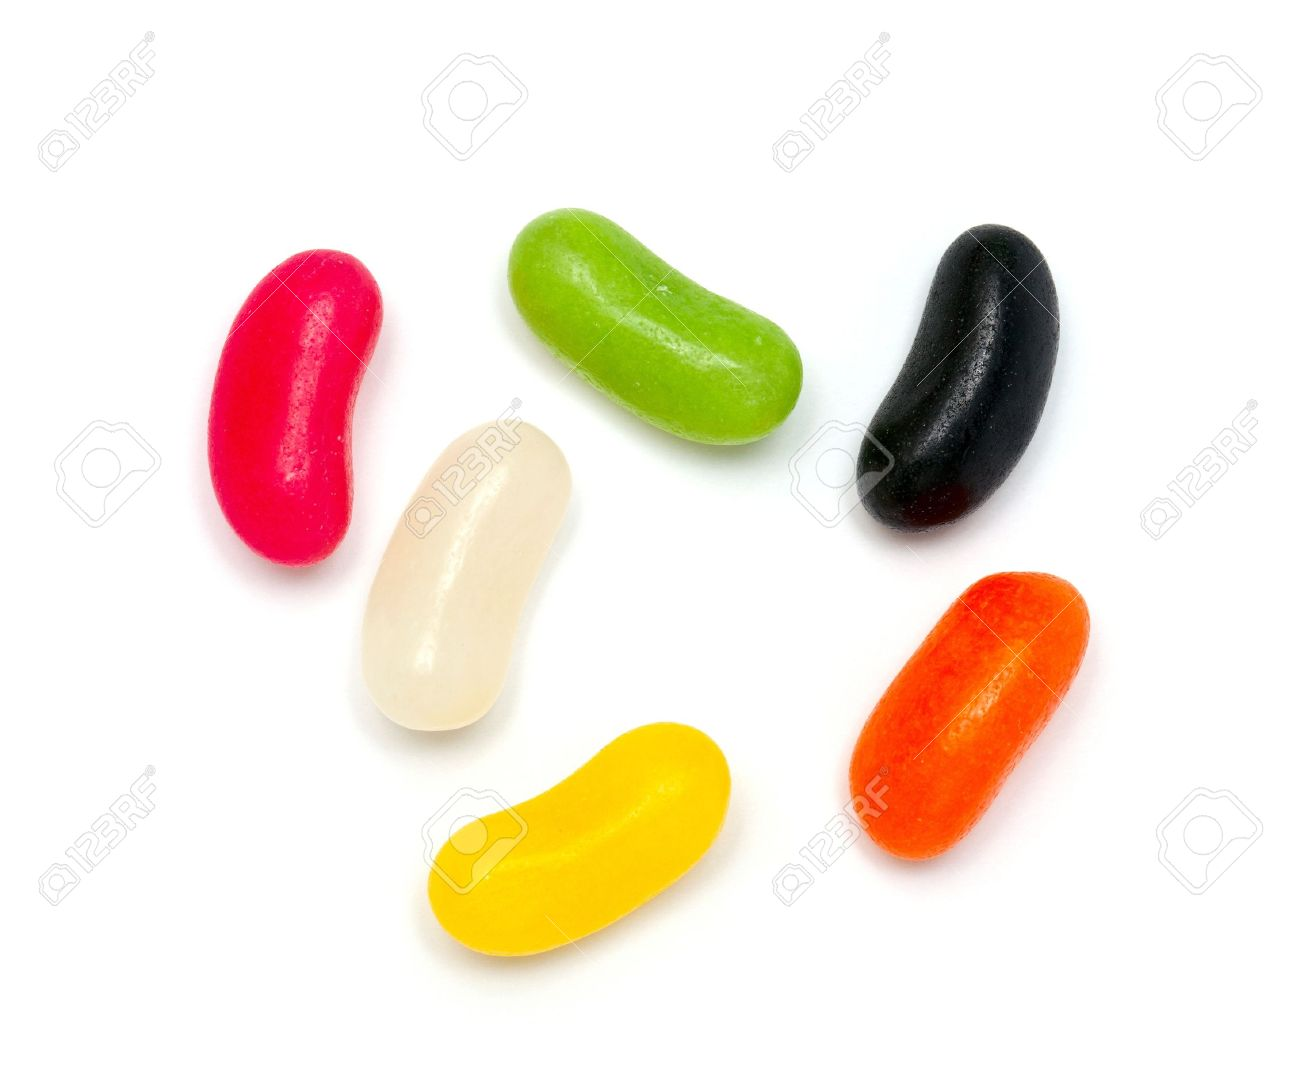 7eed4a08 Jelly Bean Candies Over White Stock Photo, Picture And Royalty Free ...